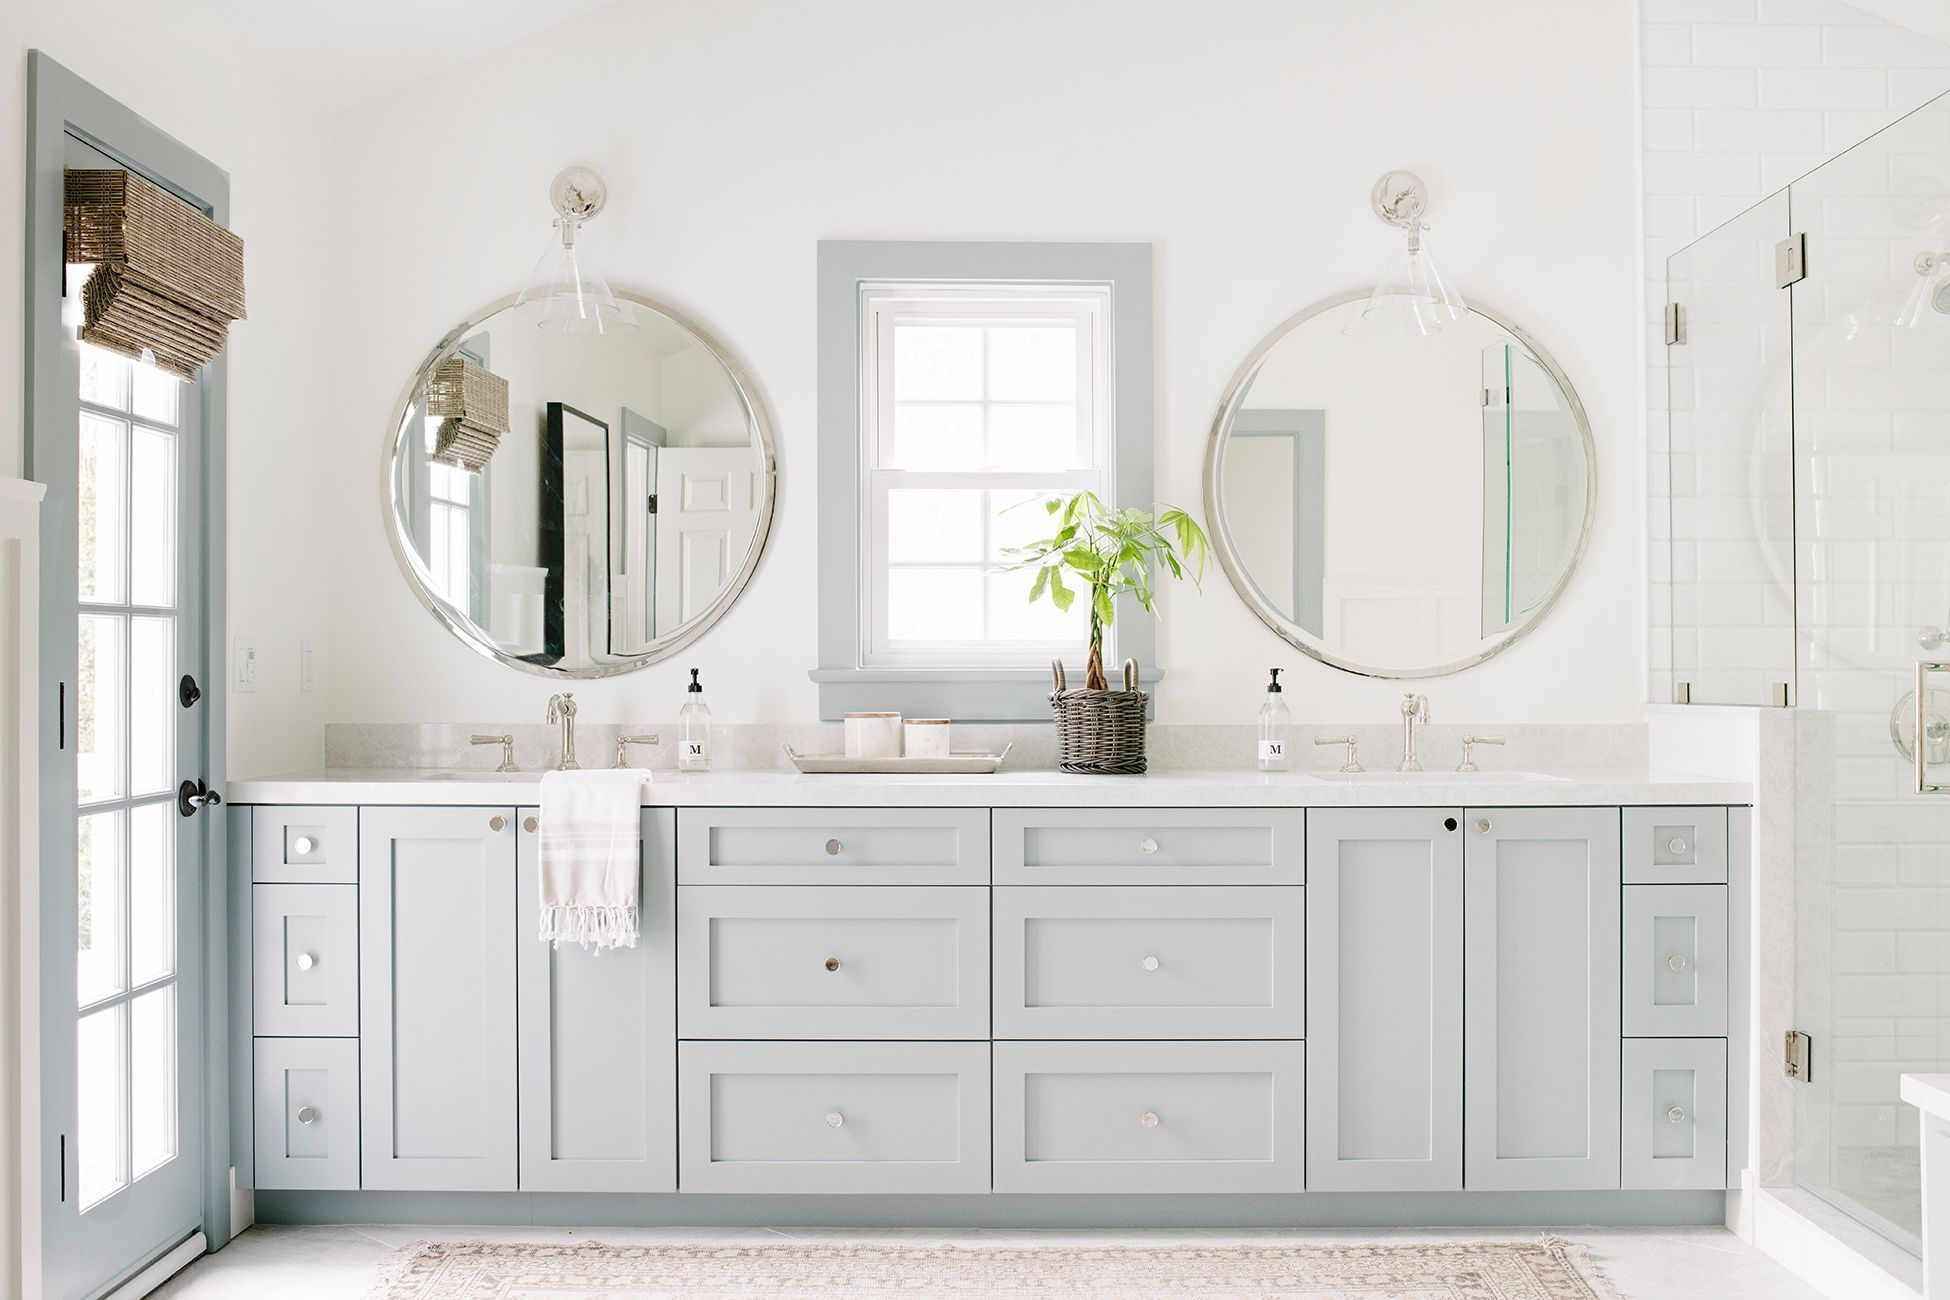 These Are The Most Popular Bathroom Paint Colors For 2020 In 2020 Bathroom Paint Colors Popular Bathroom Colors Painting Bathroom